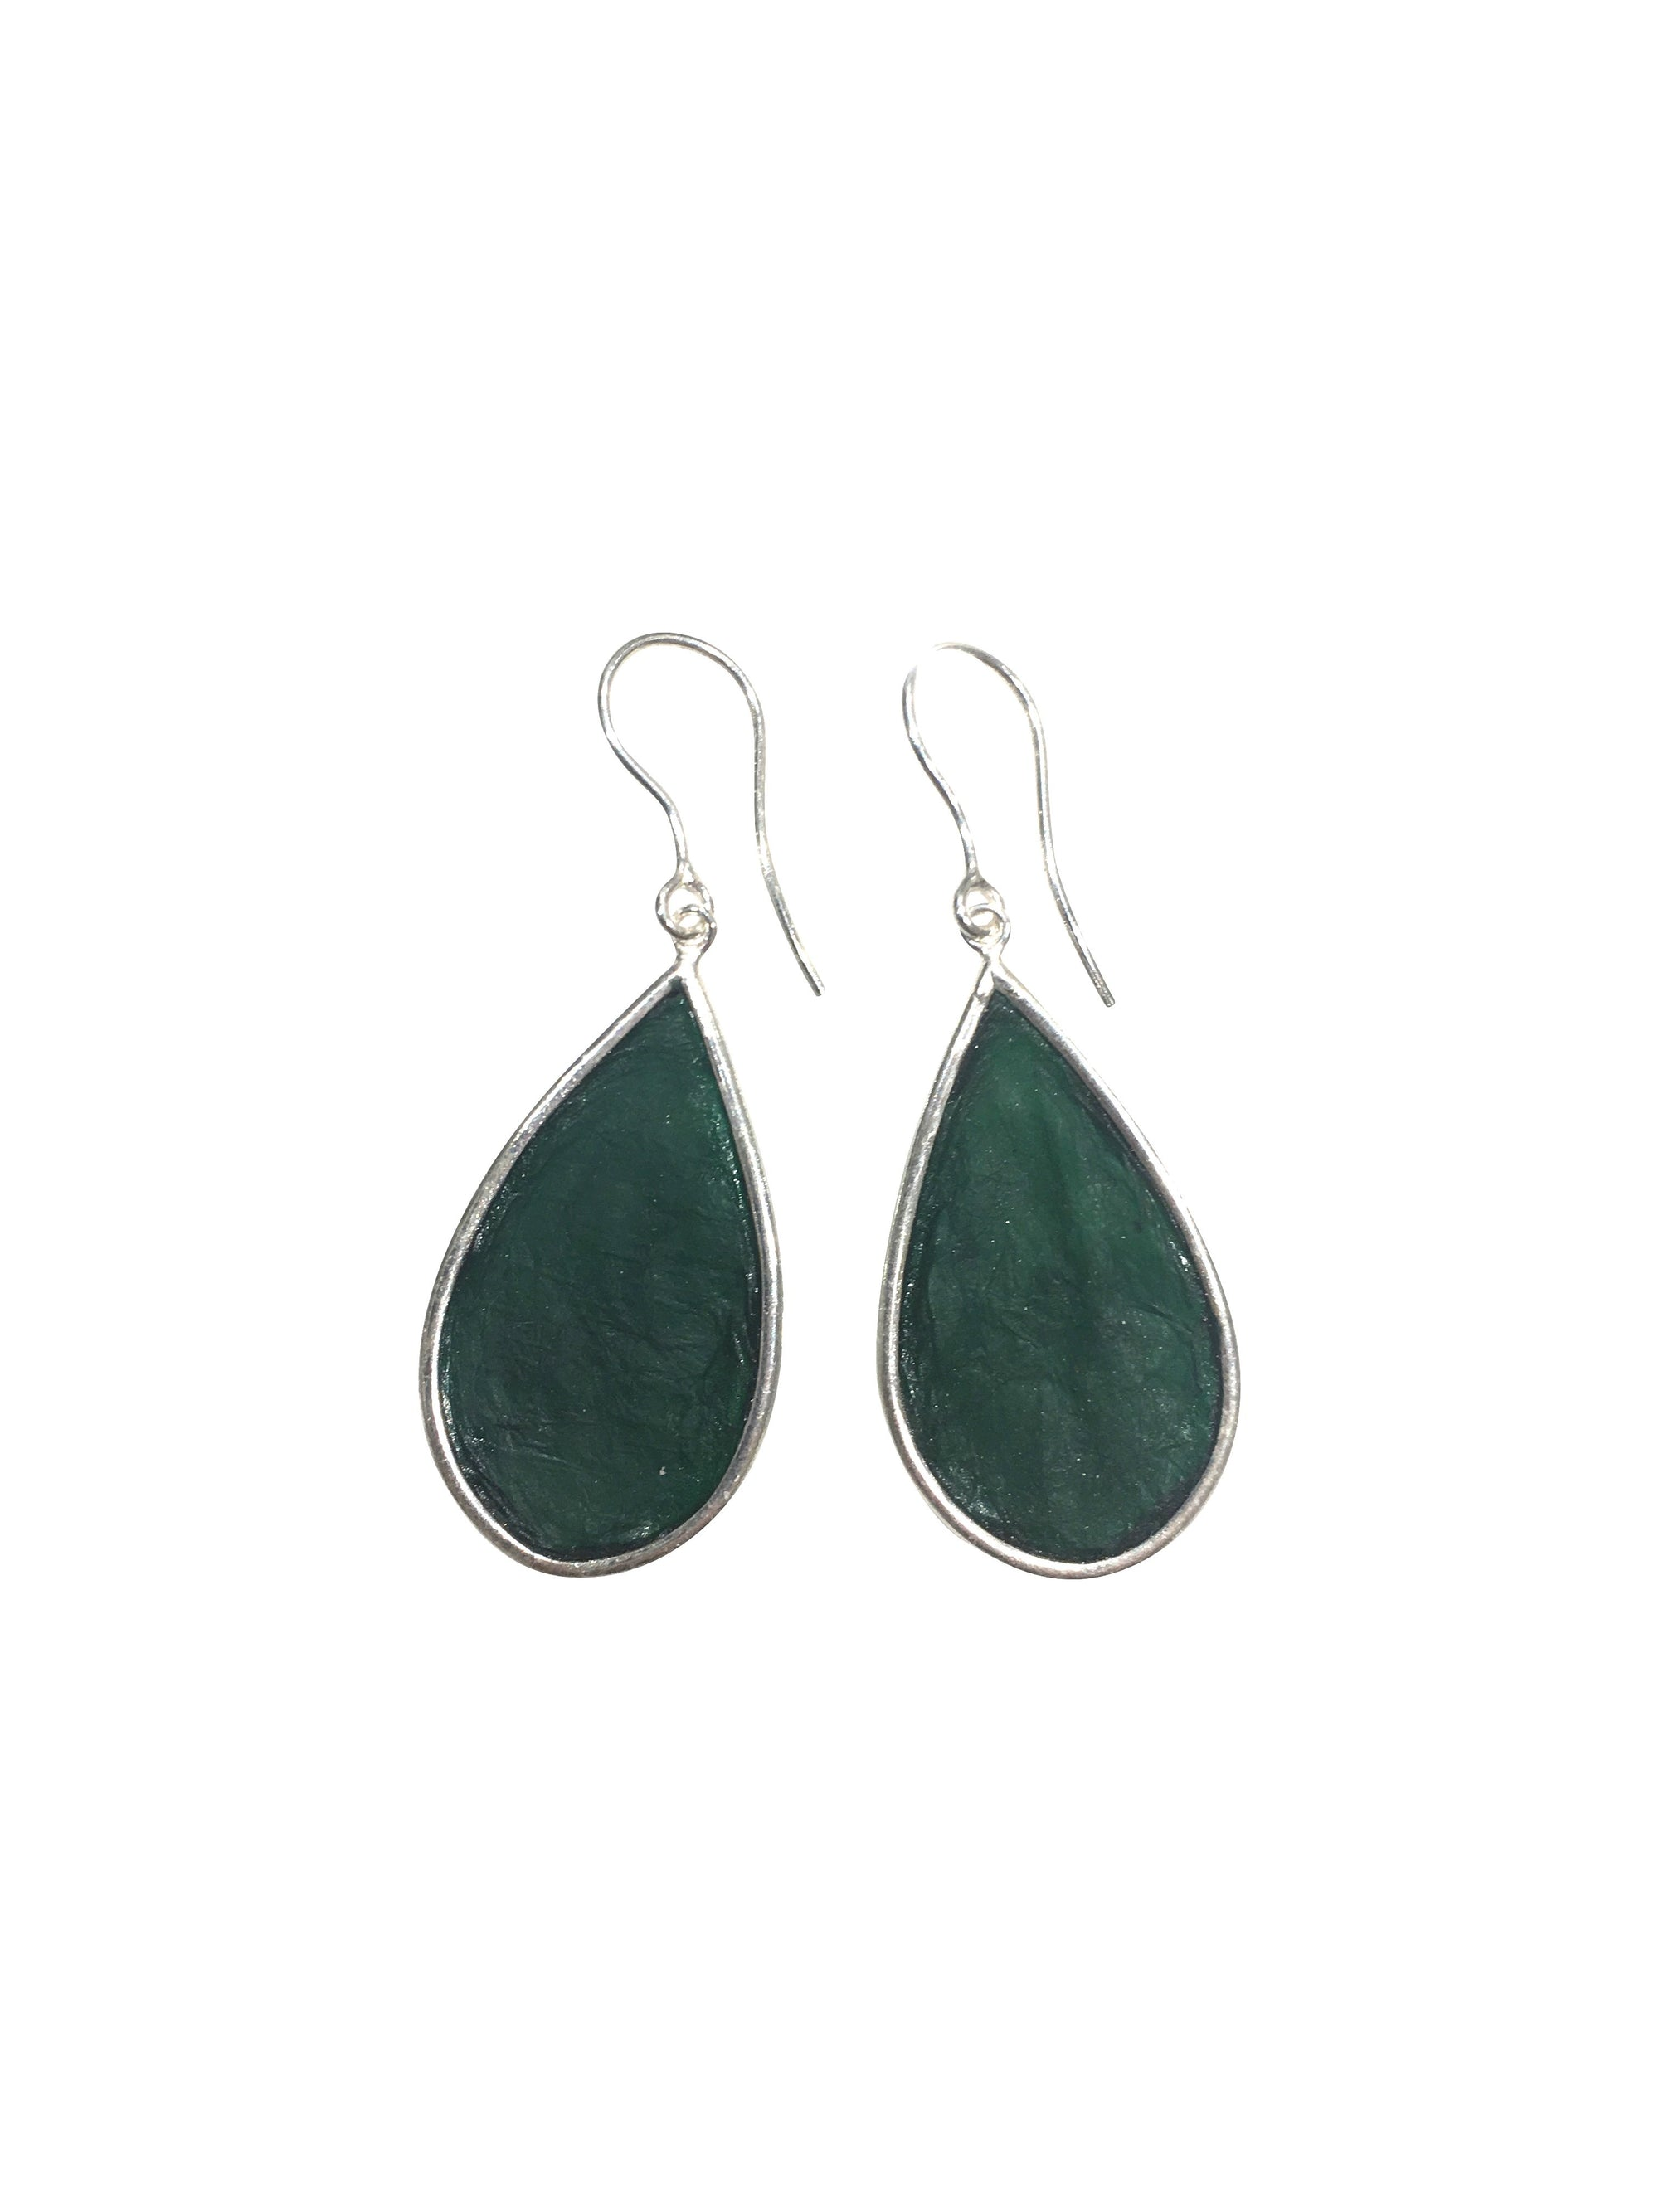 Green Teardrop Scoby Leather Sterling Silver Hook Earrings